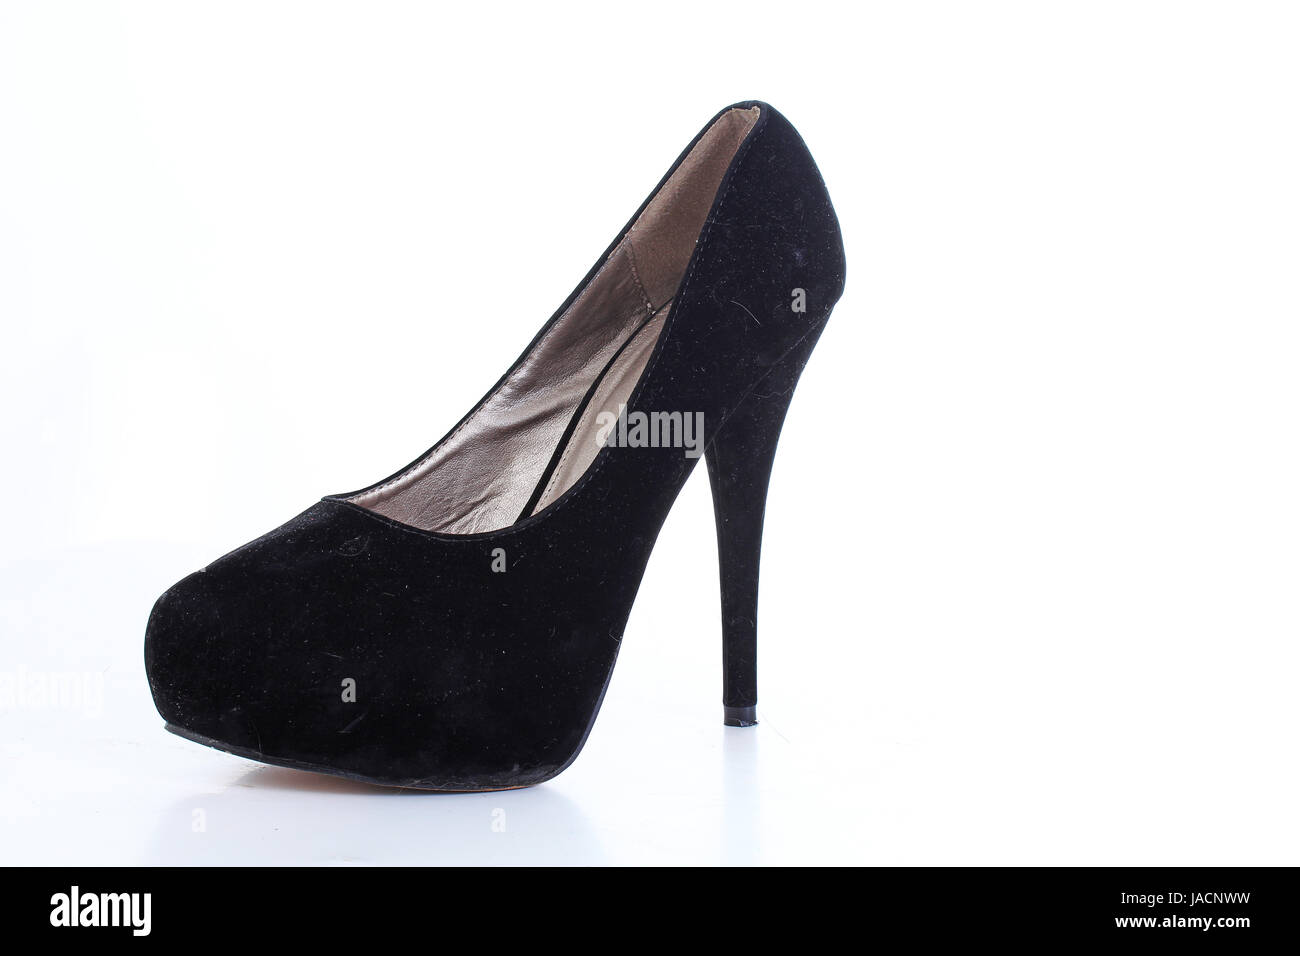 Black woman fashion shoe. High heels. - Stock Image